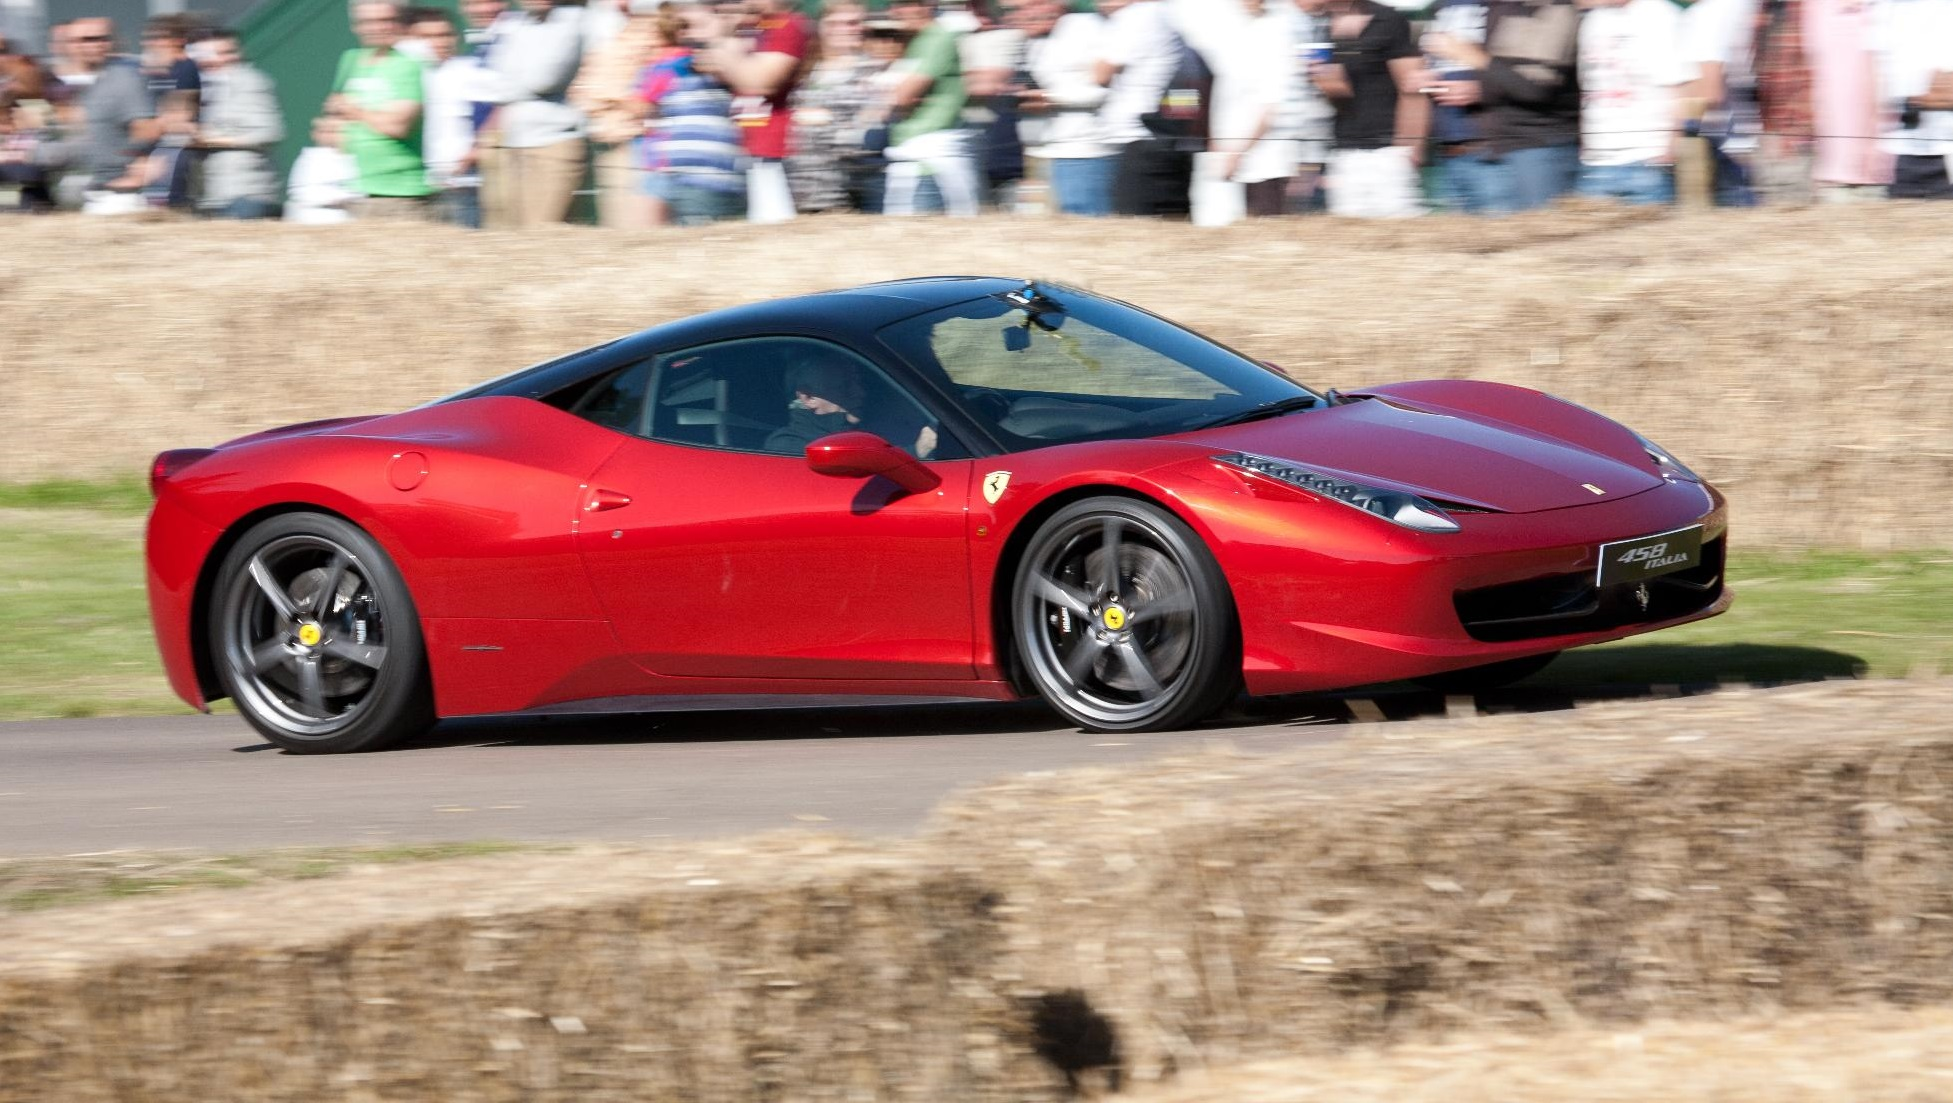 Ferrari-458-Italia-2-Goodwood-Festival-of-Speed